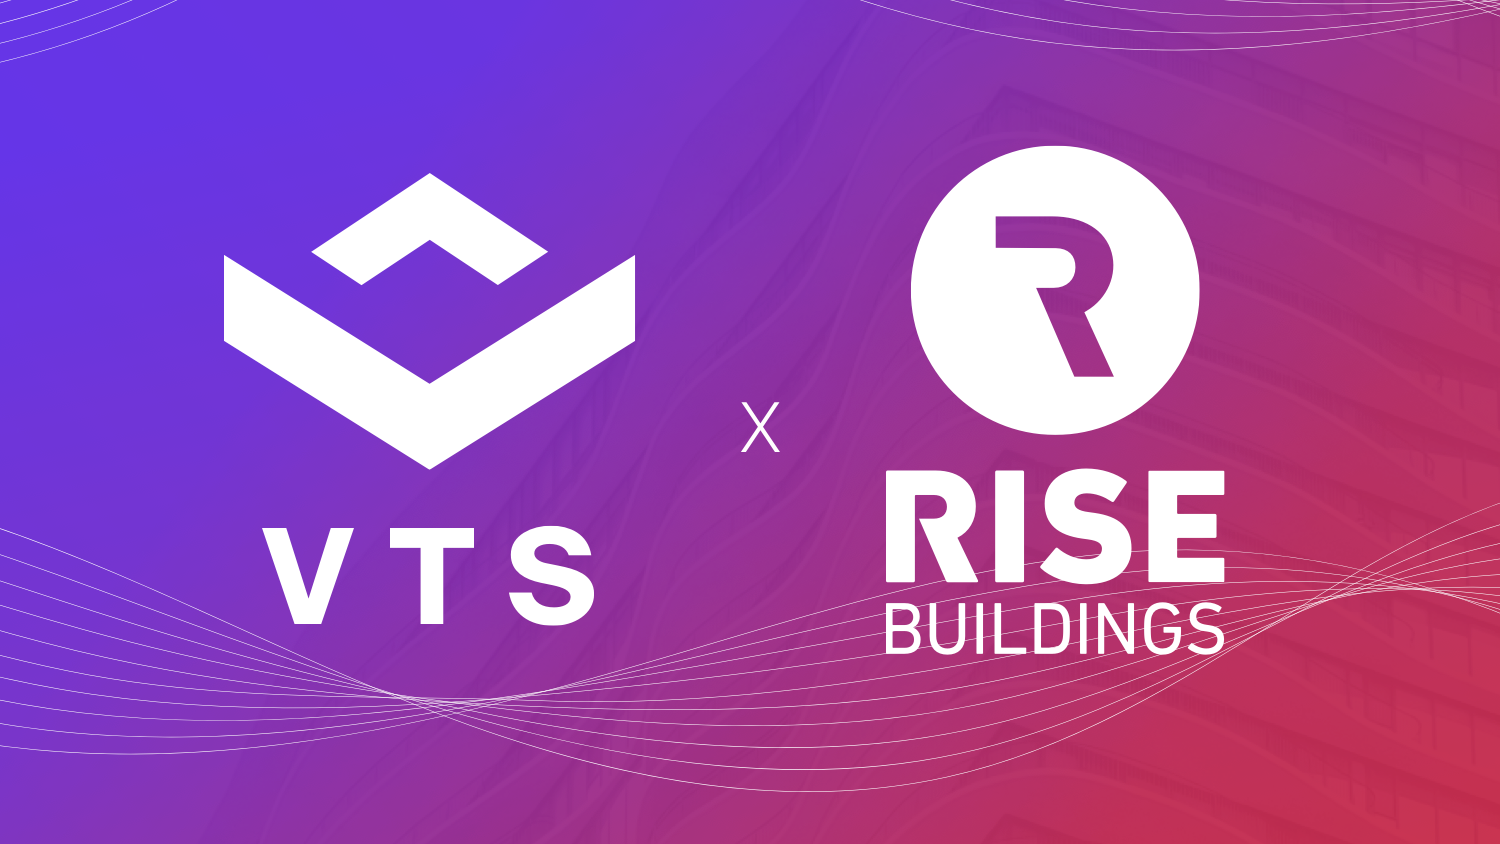 VTS is Acquiring Rise Buildings, the Next Step in Our Journey to Modernize the Entire Asset Experience for Landlords, Brokers, and Tenants